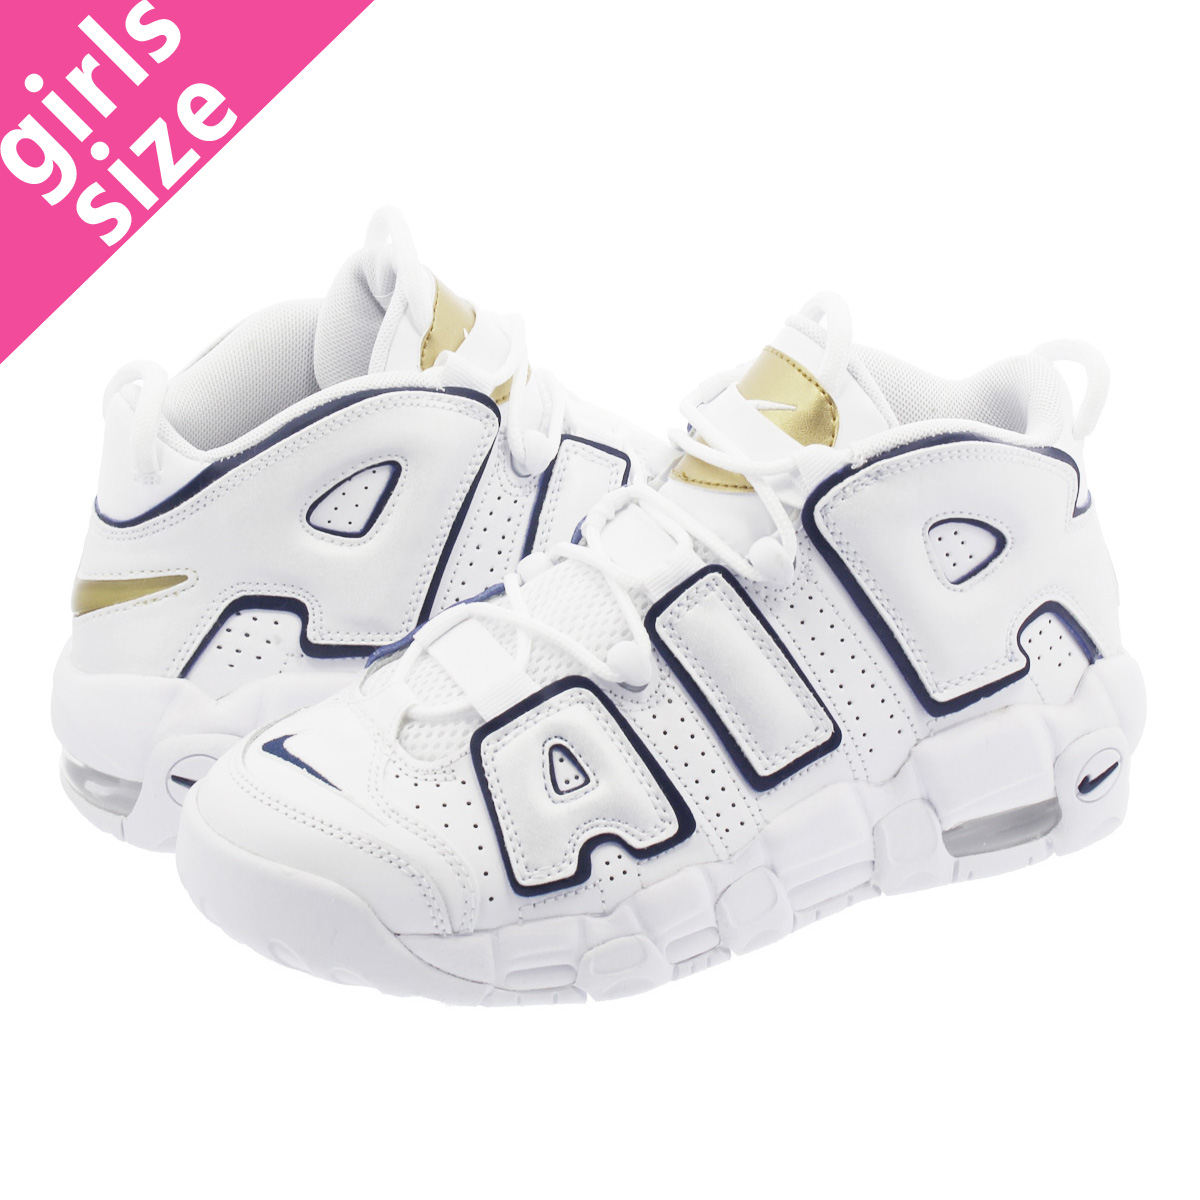 85671c68f8b NIKE AIR MORE UPTEMPO GS Nike more up tempo GS WHITE MIDNIGHT NAVY GOLD  415